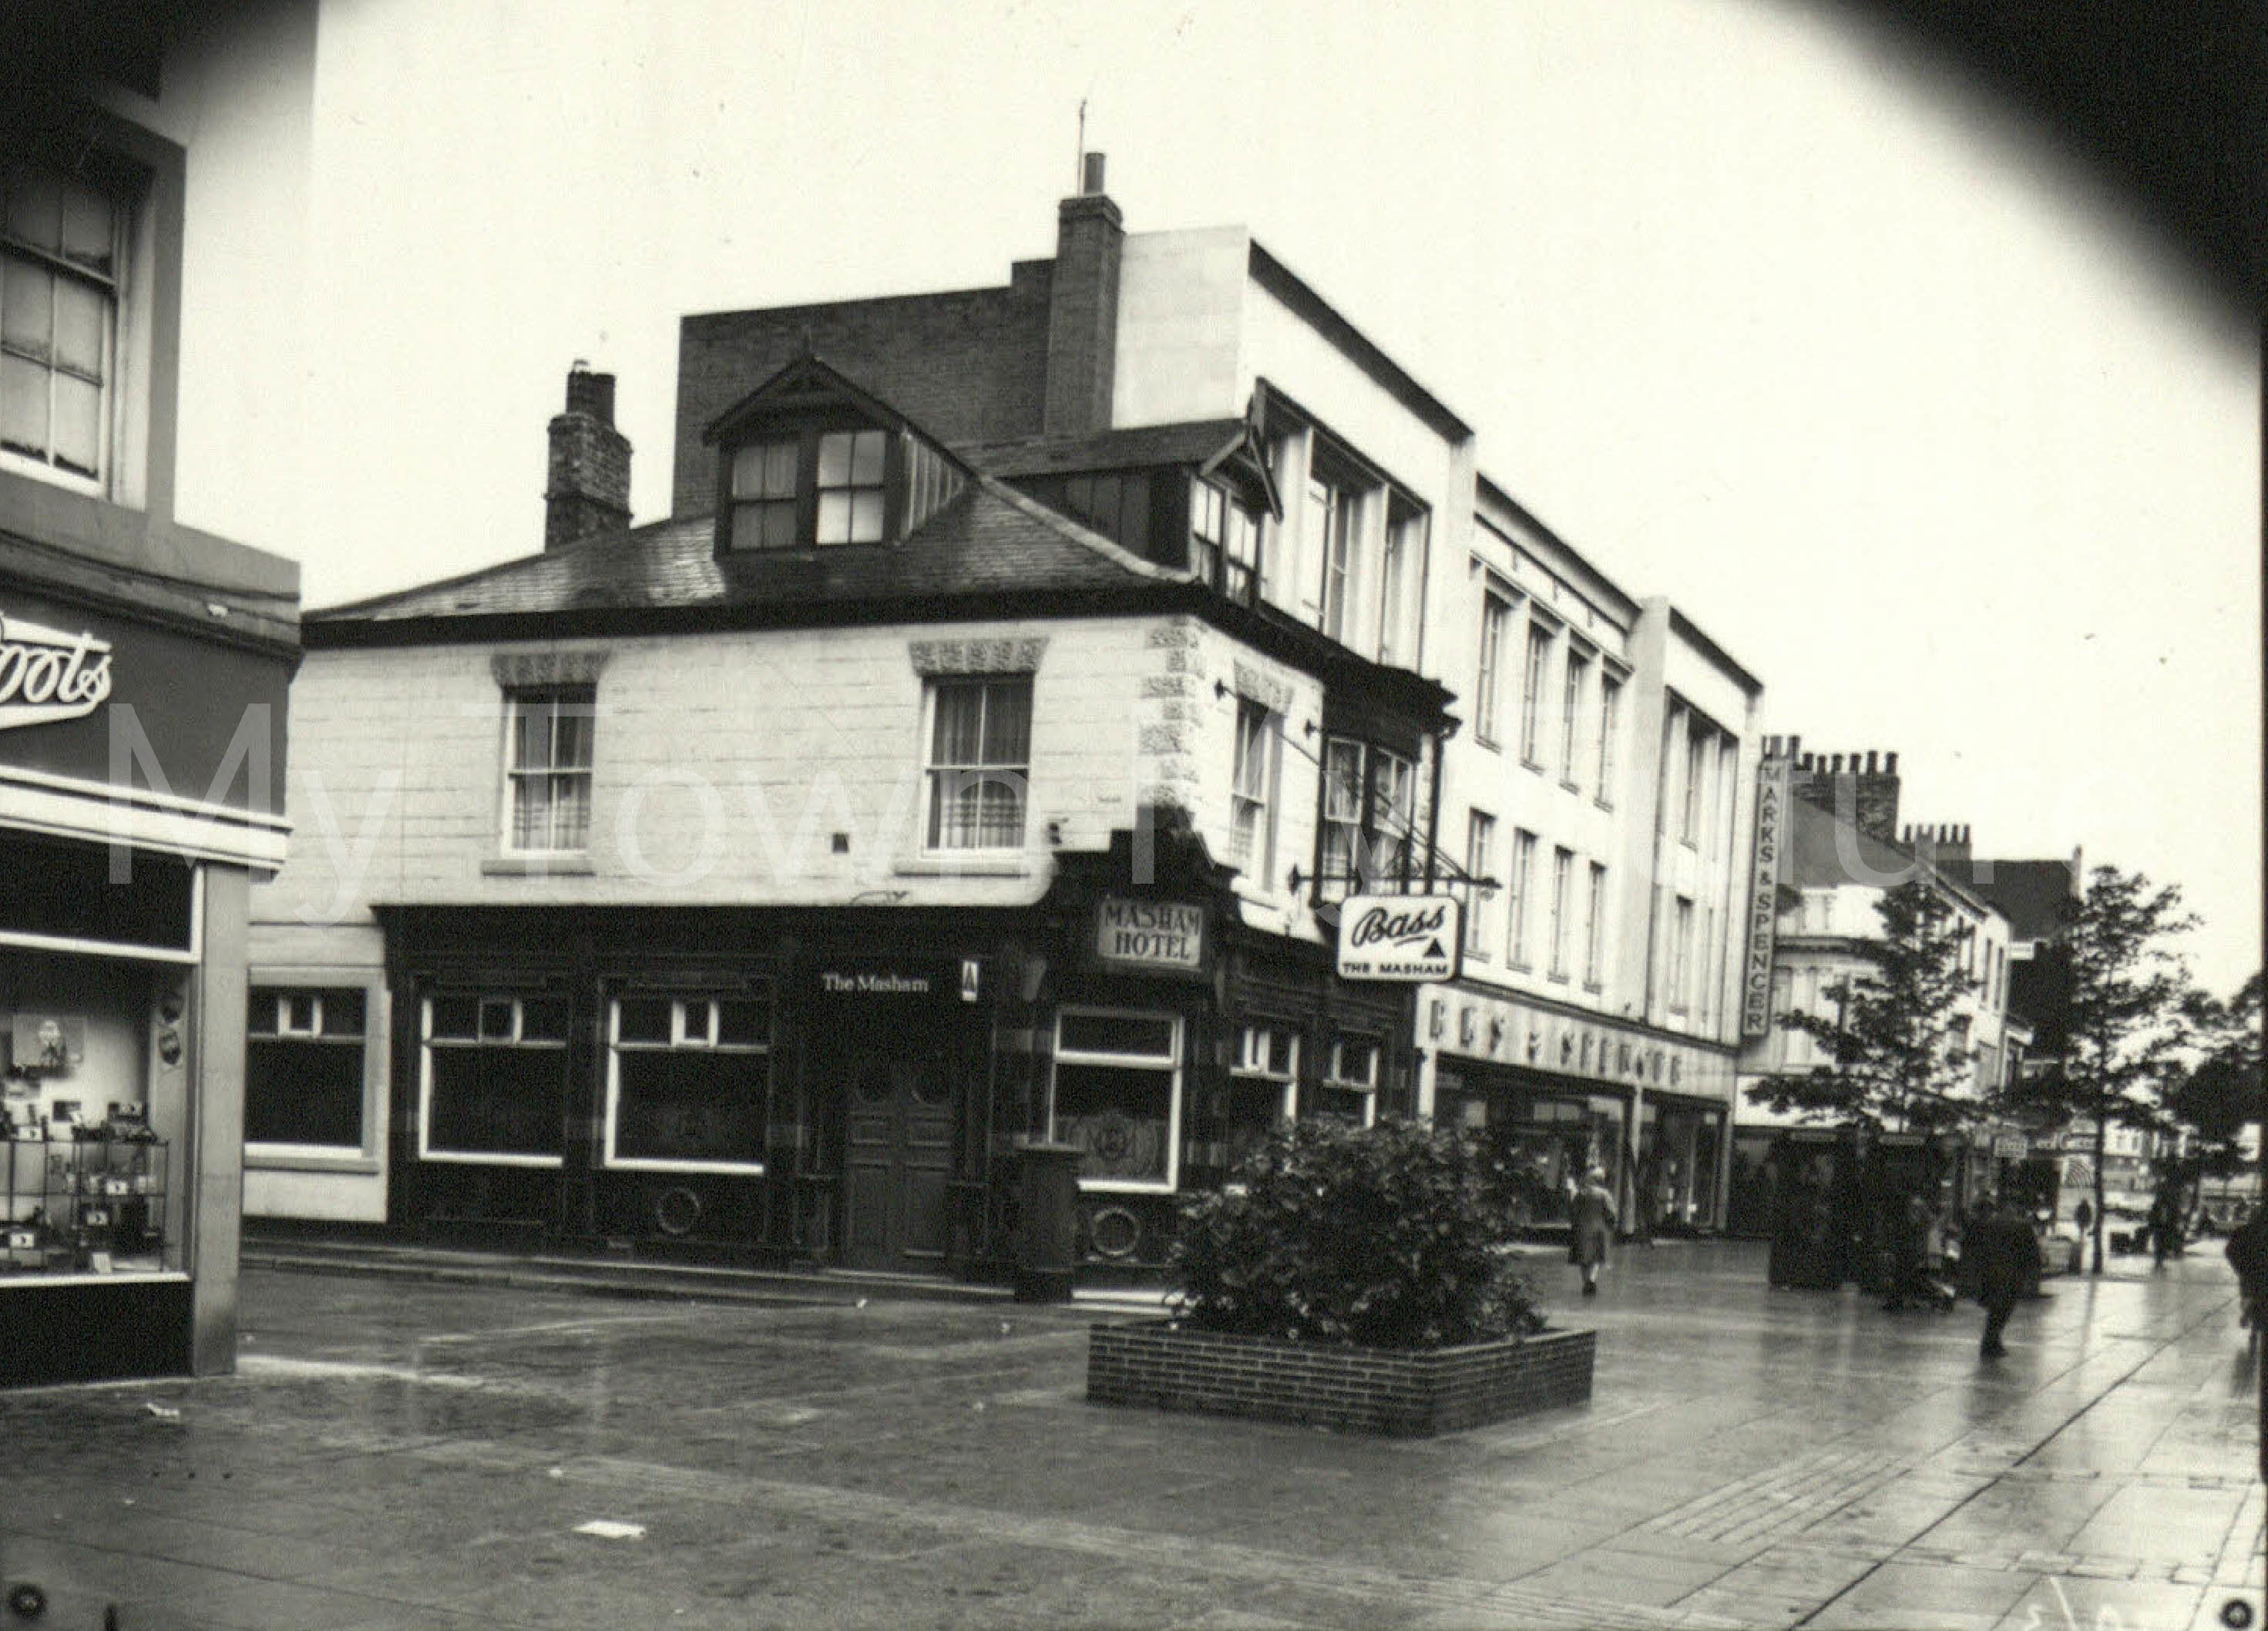 The Masham Hotel, 13 May 1871, Corner of Vaughan St & Linthorpe Rd, 1st opened in 1865 as The Albion House - Closed 3 Jan 1995, Grade II